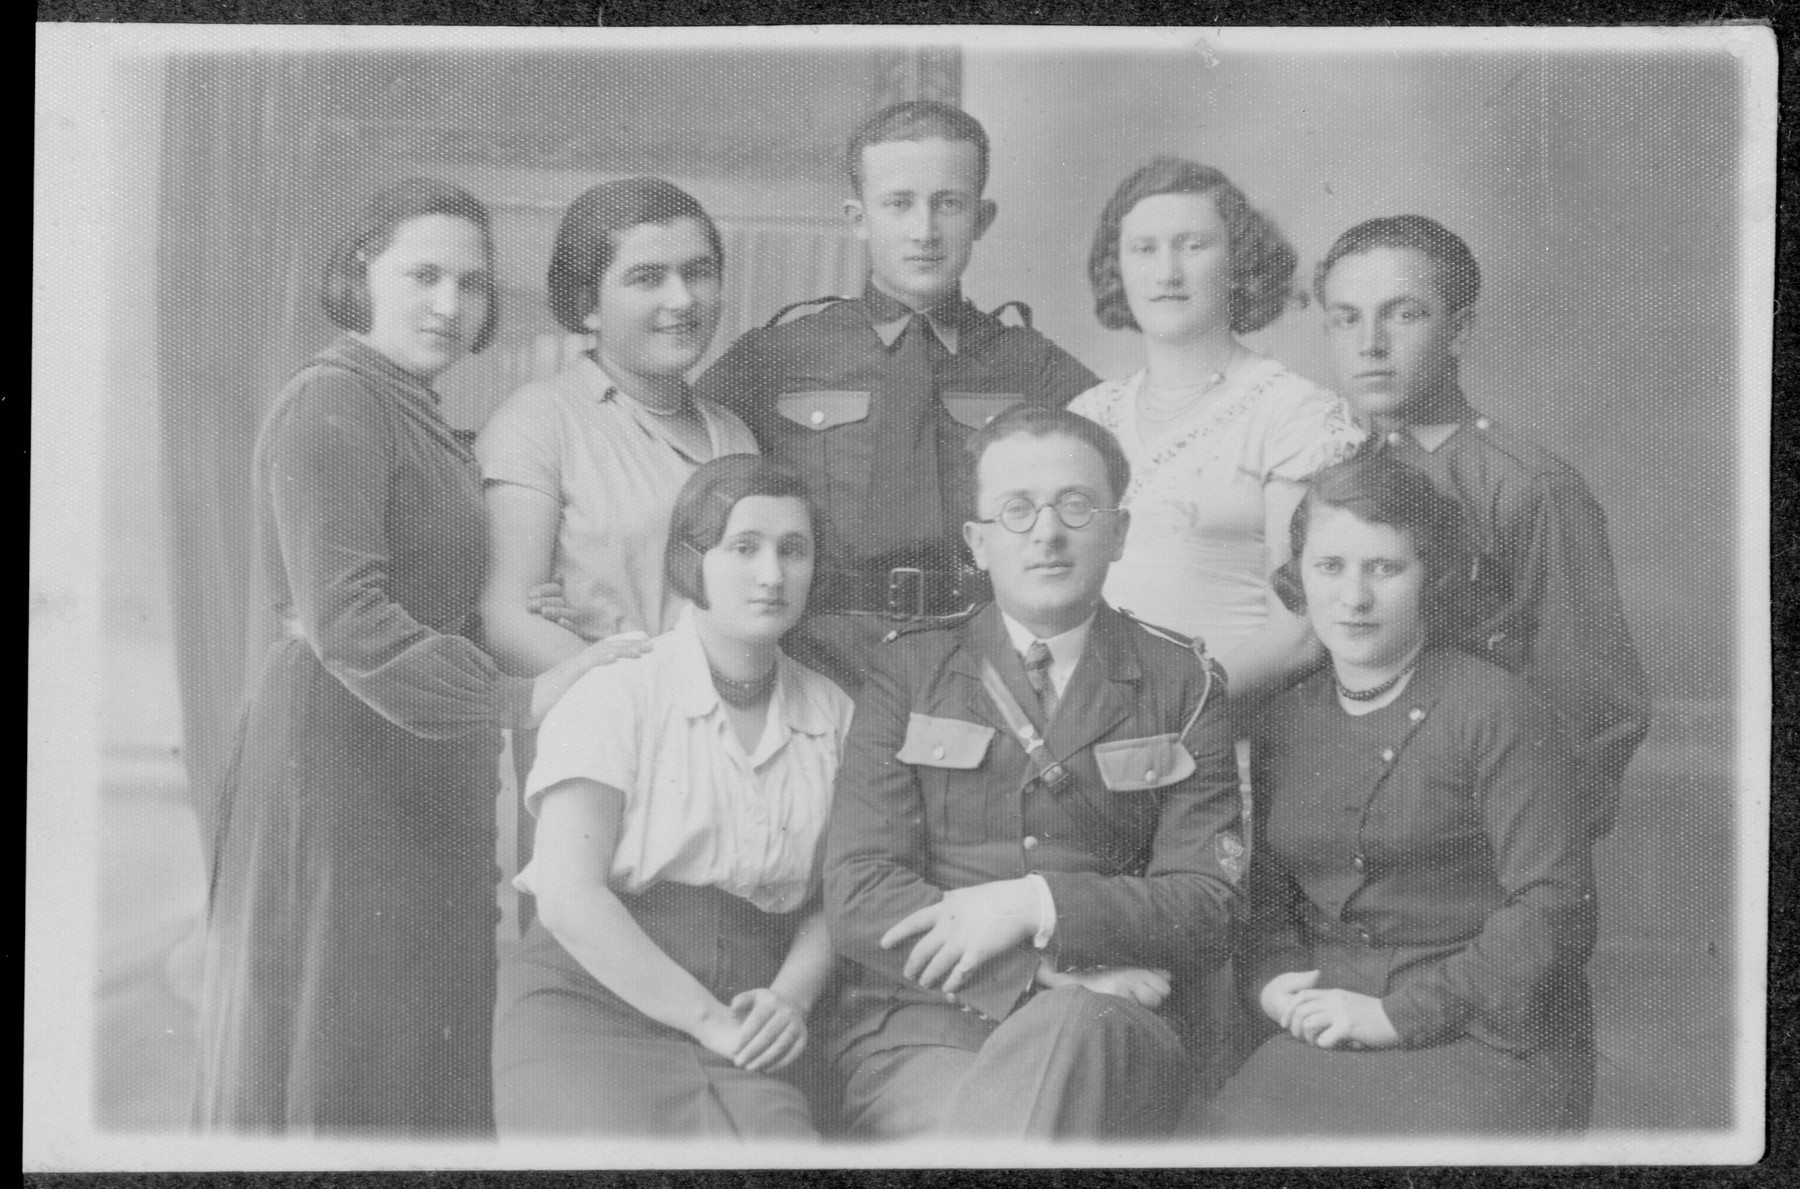 Group portrait of the members of a Zionist hachshara in Lvov.